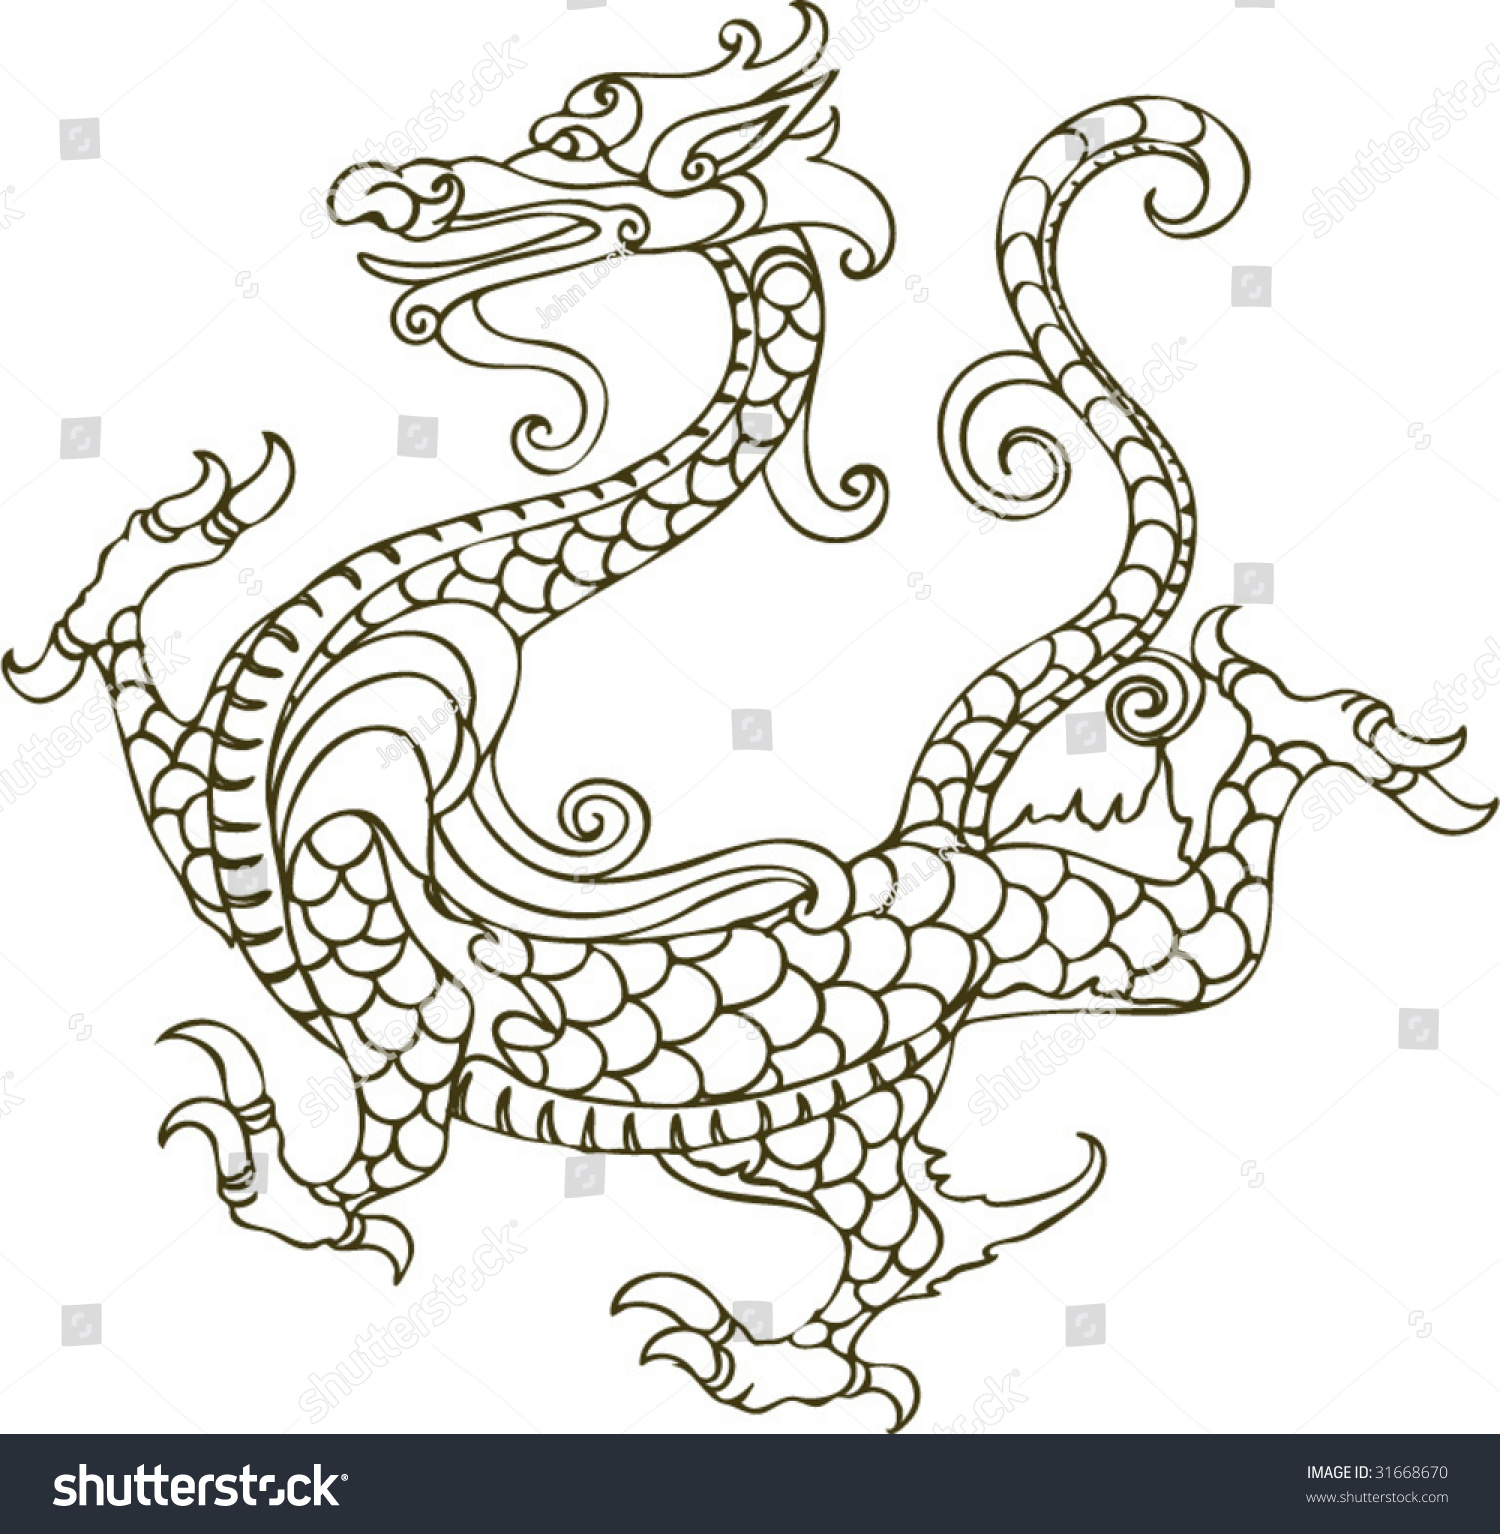 vector ancient chinese dragon pattern stock vector 31668670